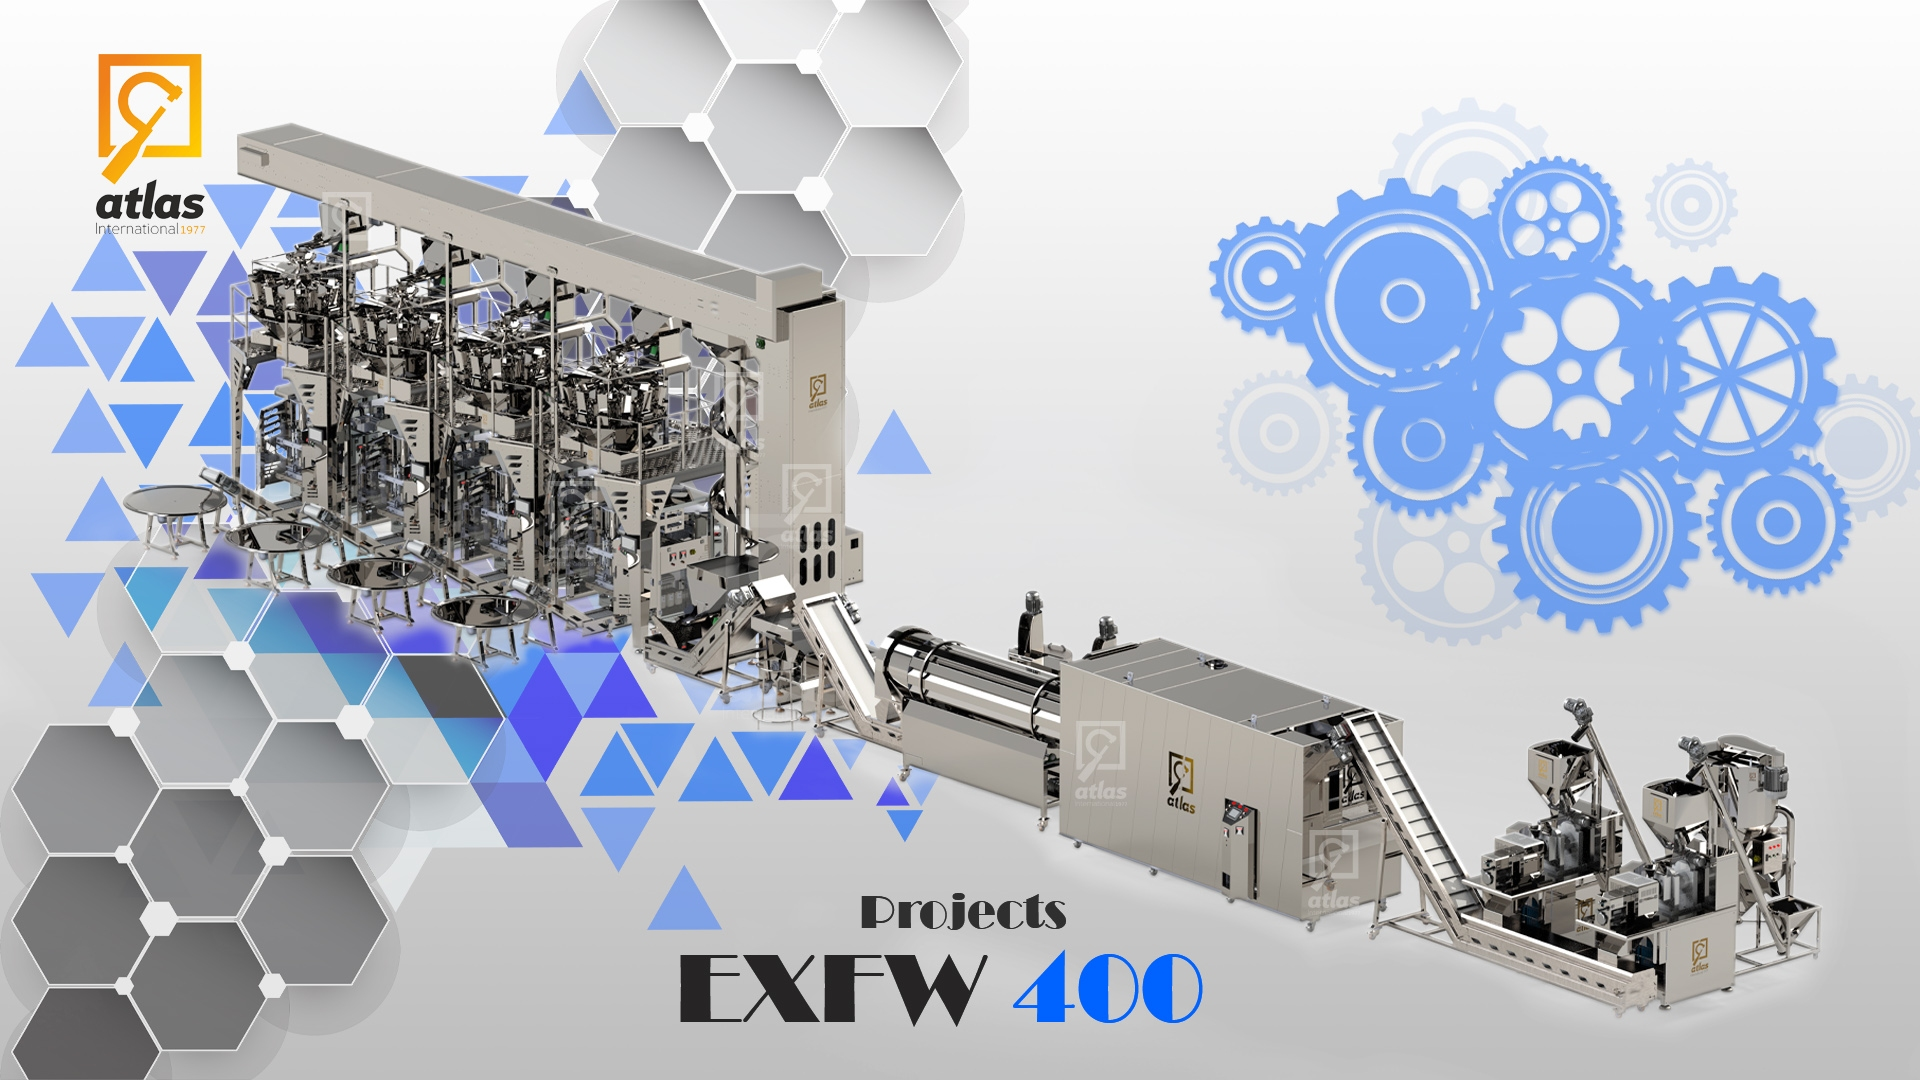 Second Project Full Automatic Chips Production & Filling Line EXFW 400